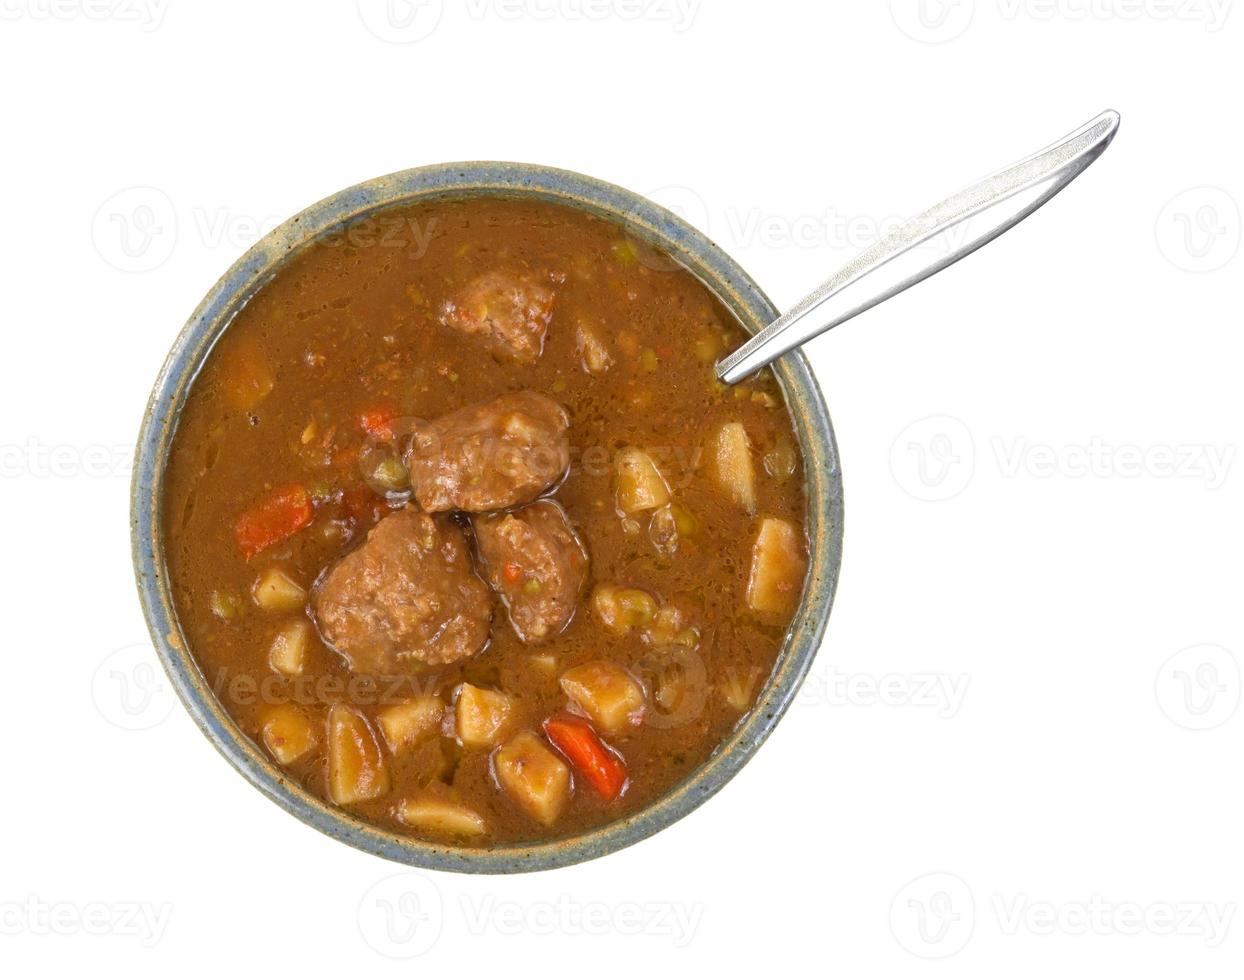 Bowl of meatball stew with a spoon photo